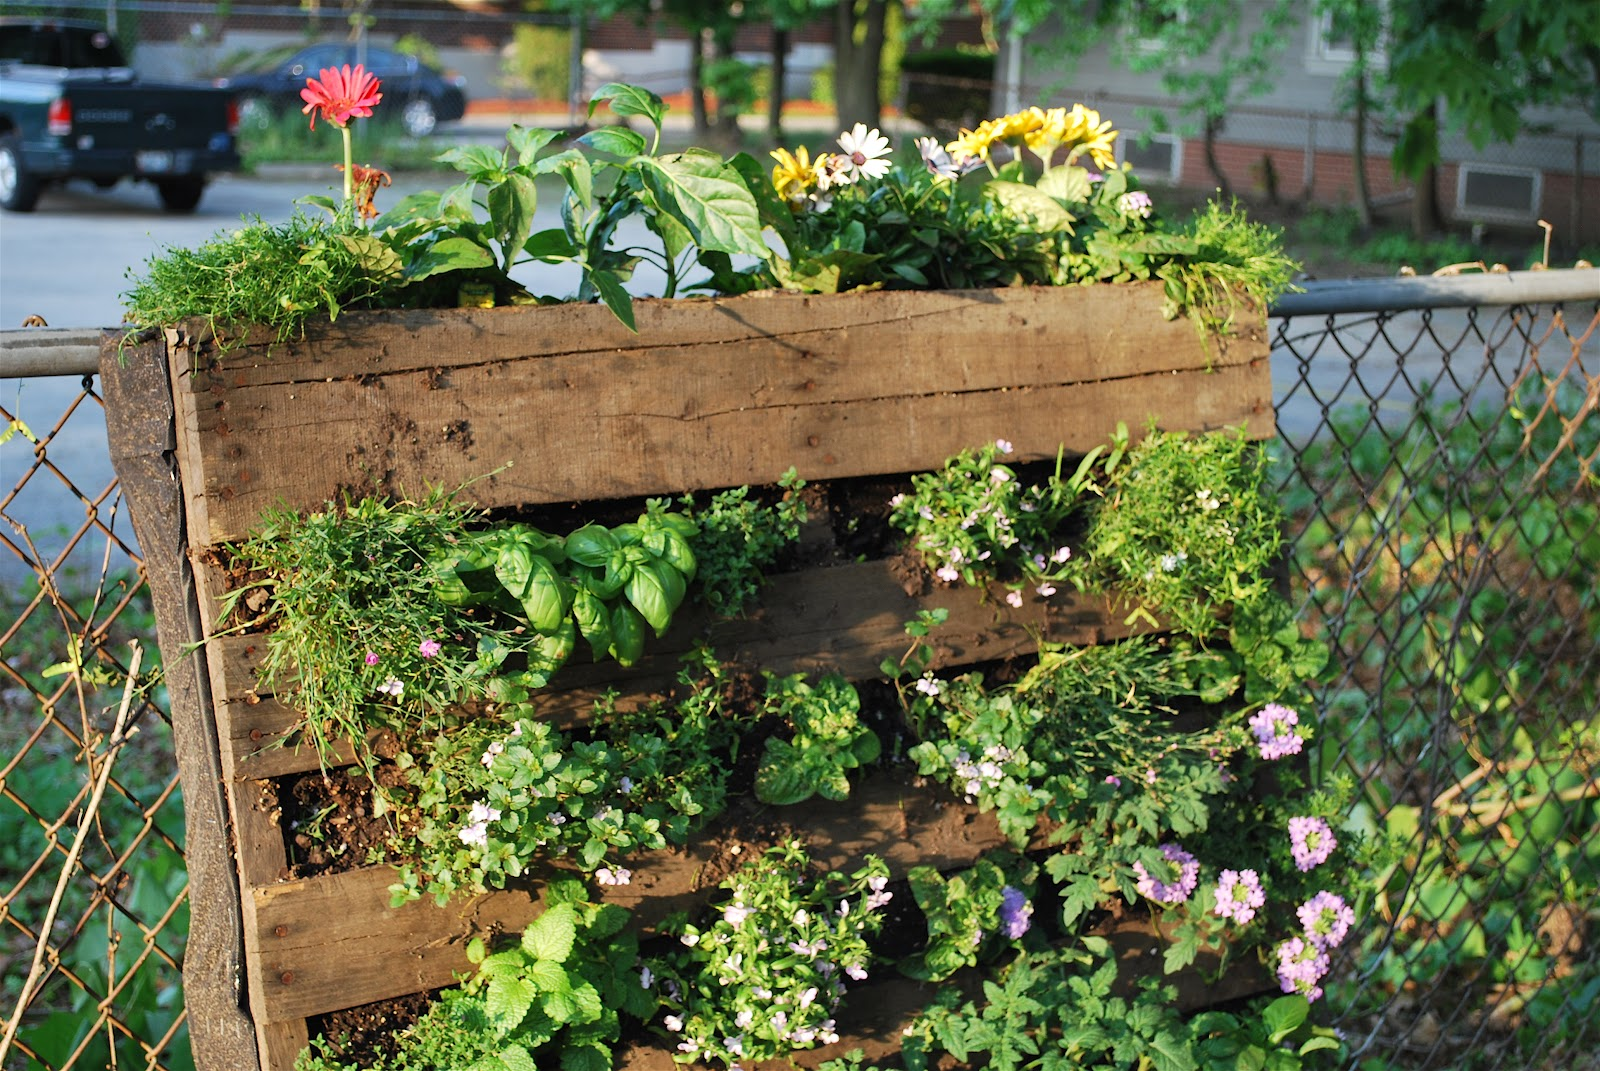 We Are Gardening Amateurs, But I Am Super Proud Of Our Little Pallet Garden.  (Thanks Pinterest People For All Of The Inspiration!)